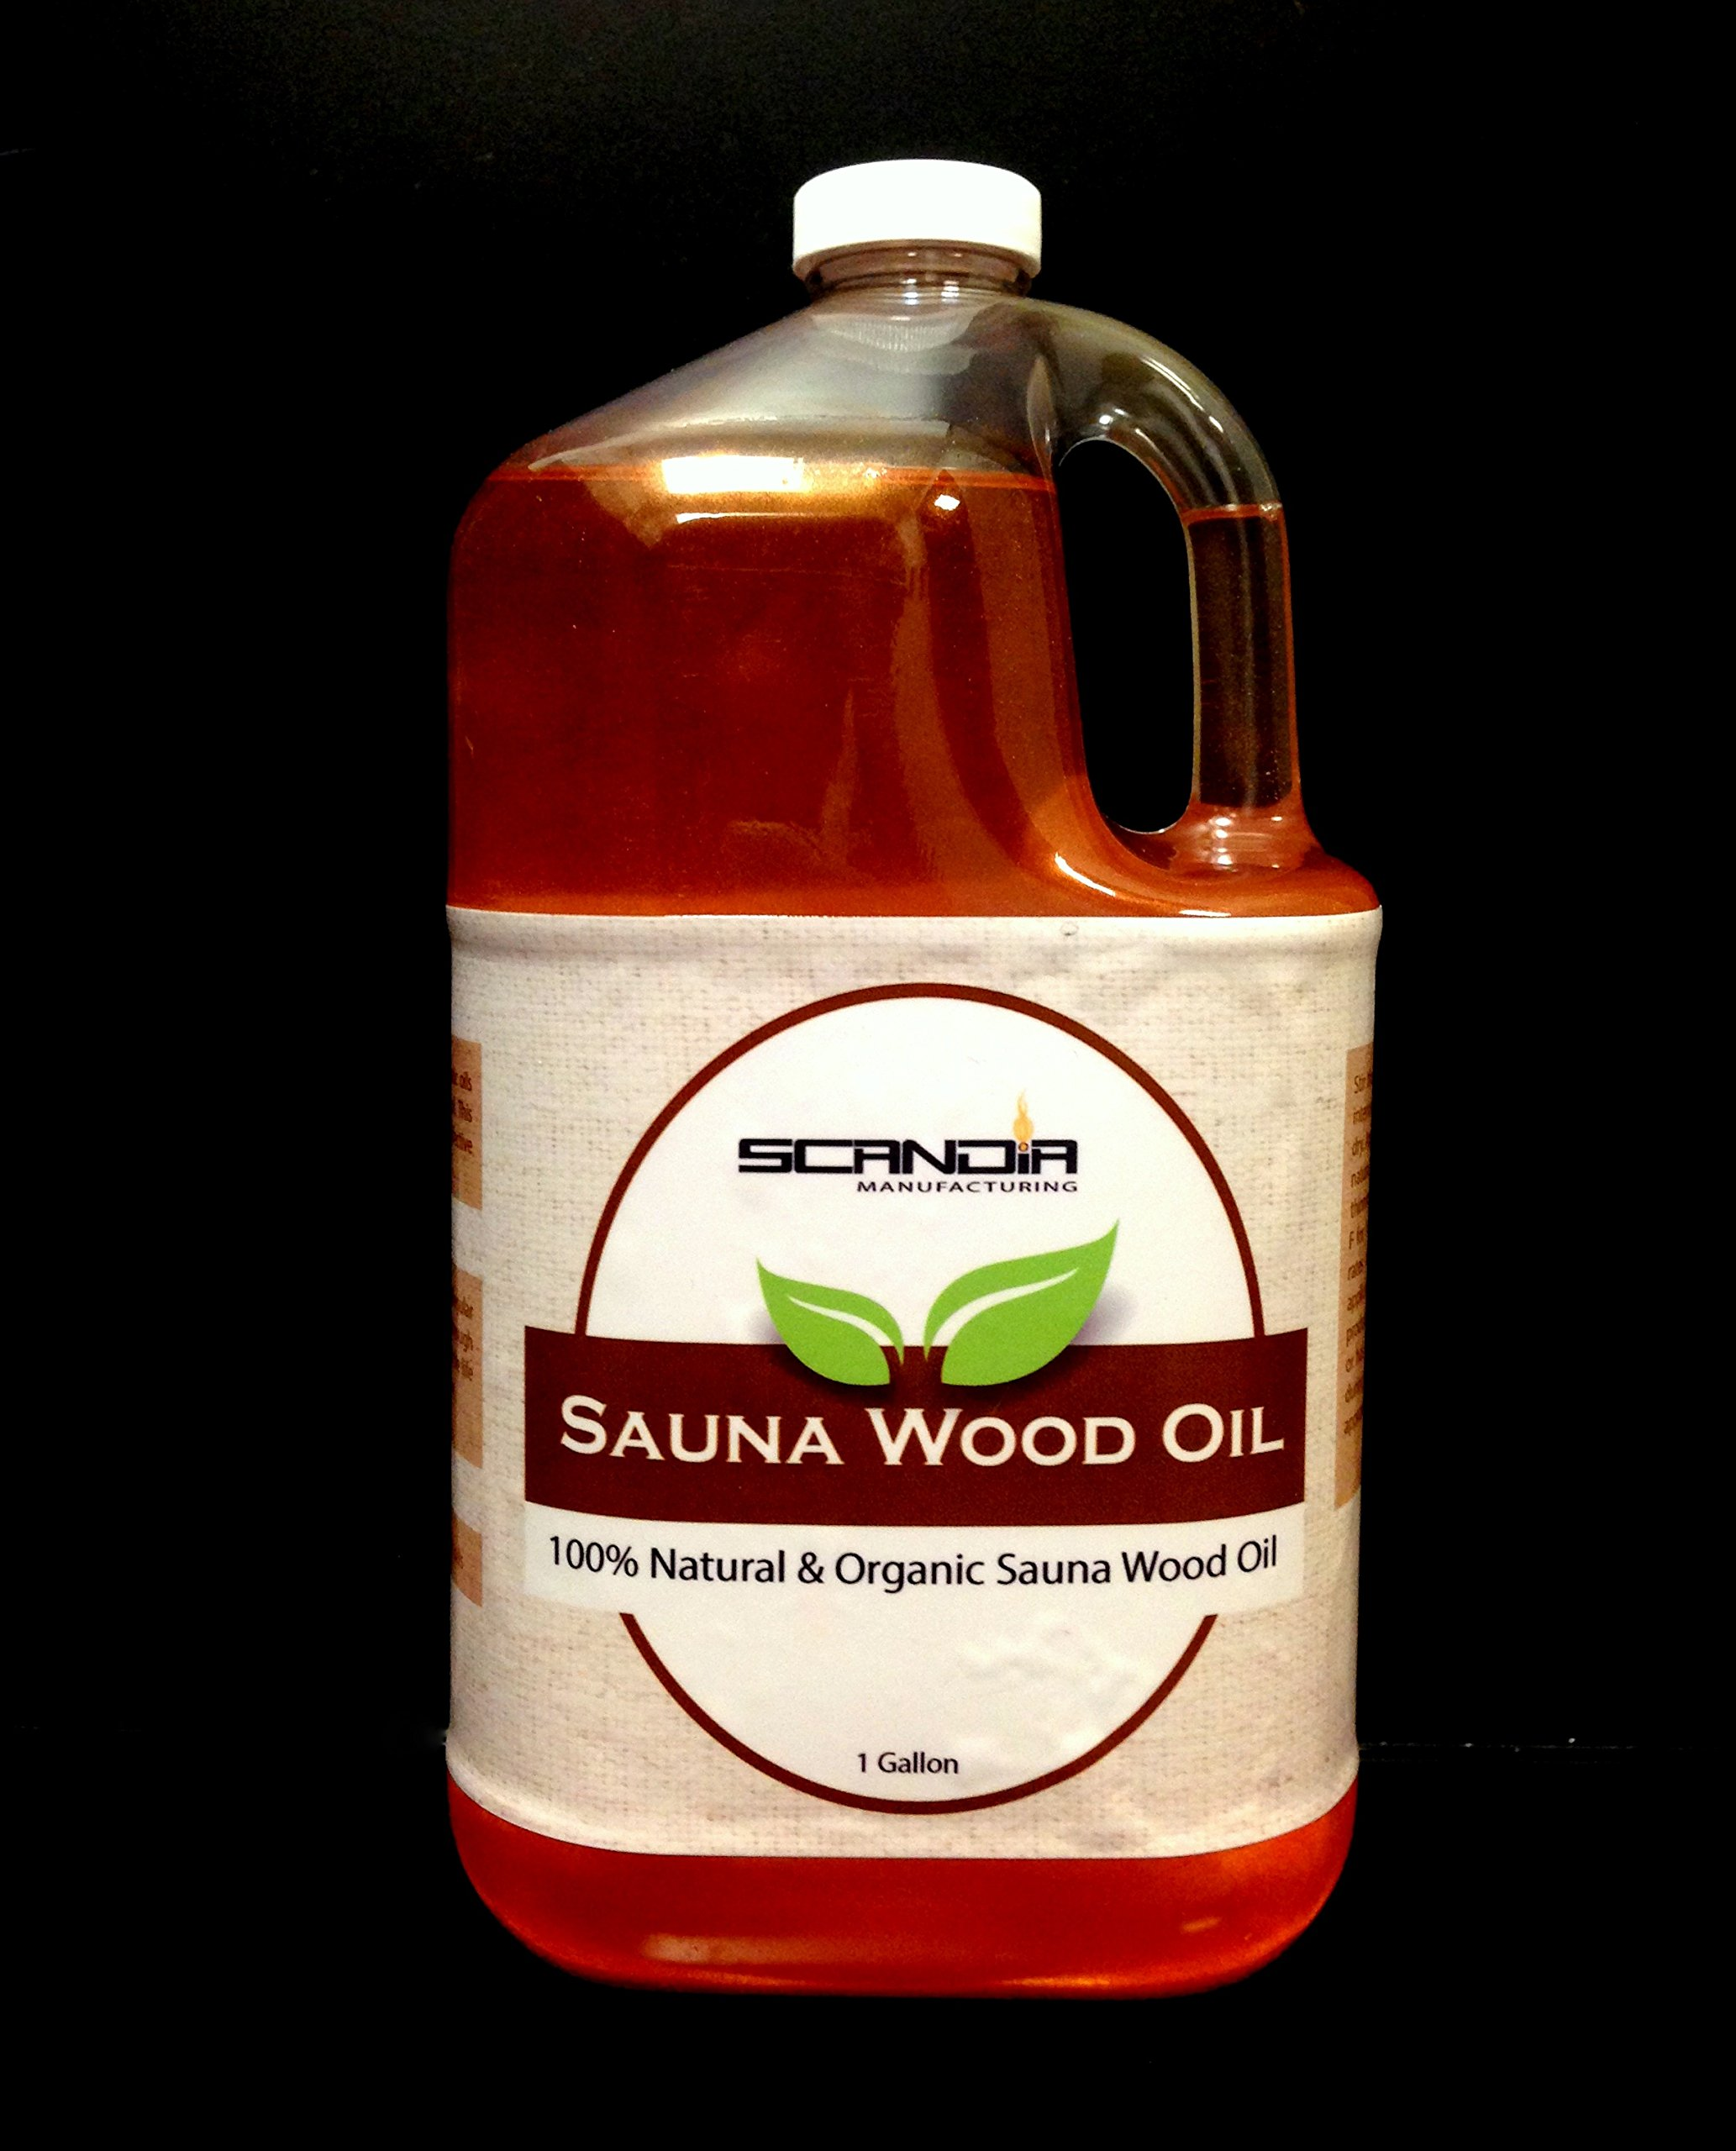 Scandia Sauna Wood Oil 100% Natural All Organic - 1 Gallon